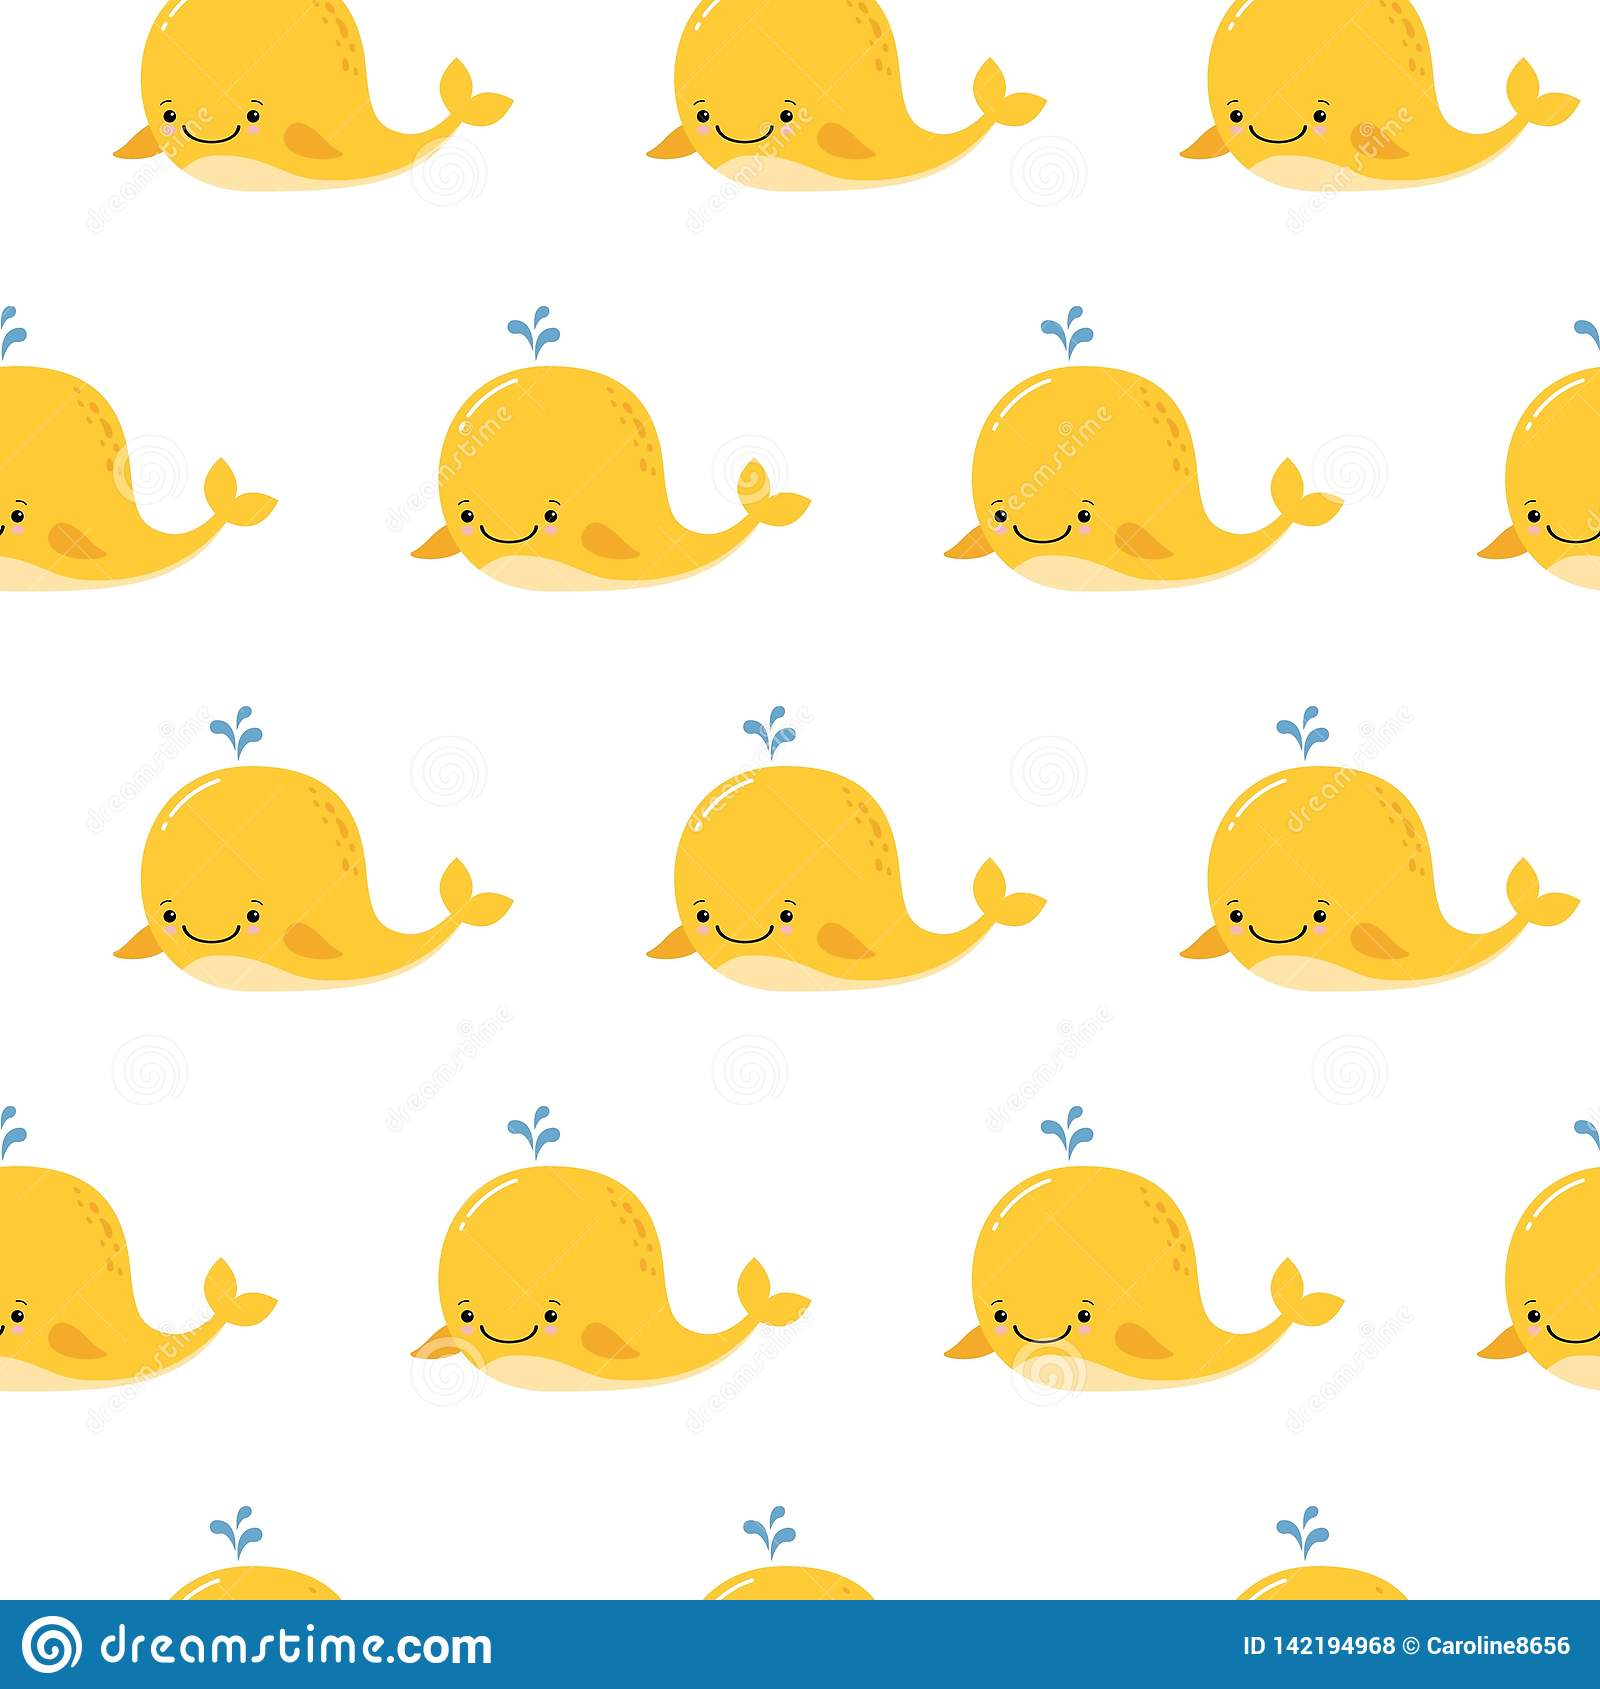 Cute Background With Cartoon Yellow Whales Kawaii Animal Pattern